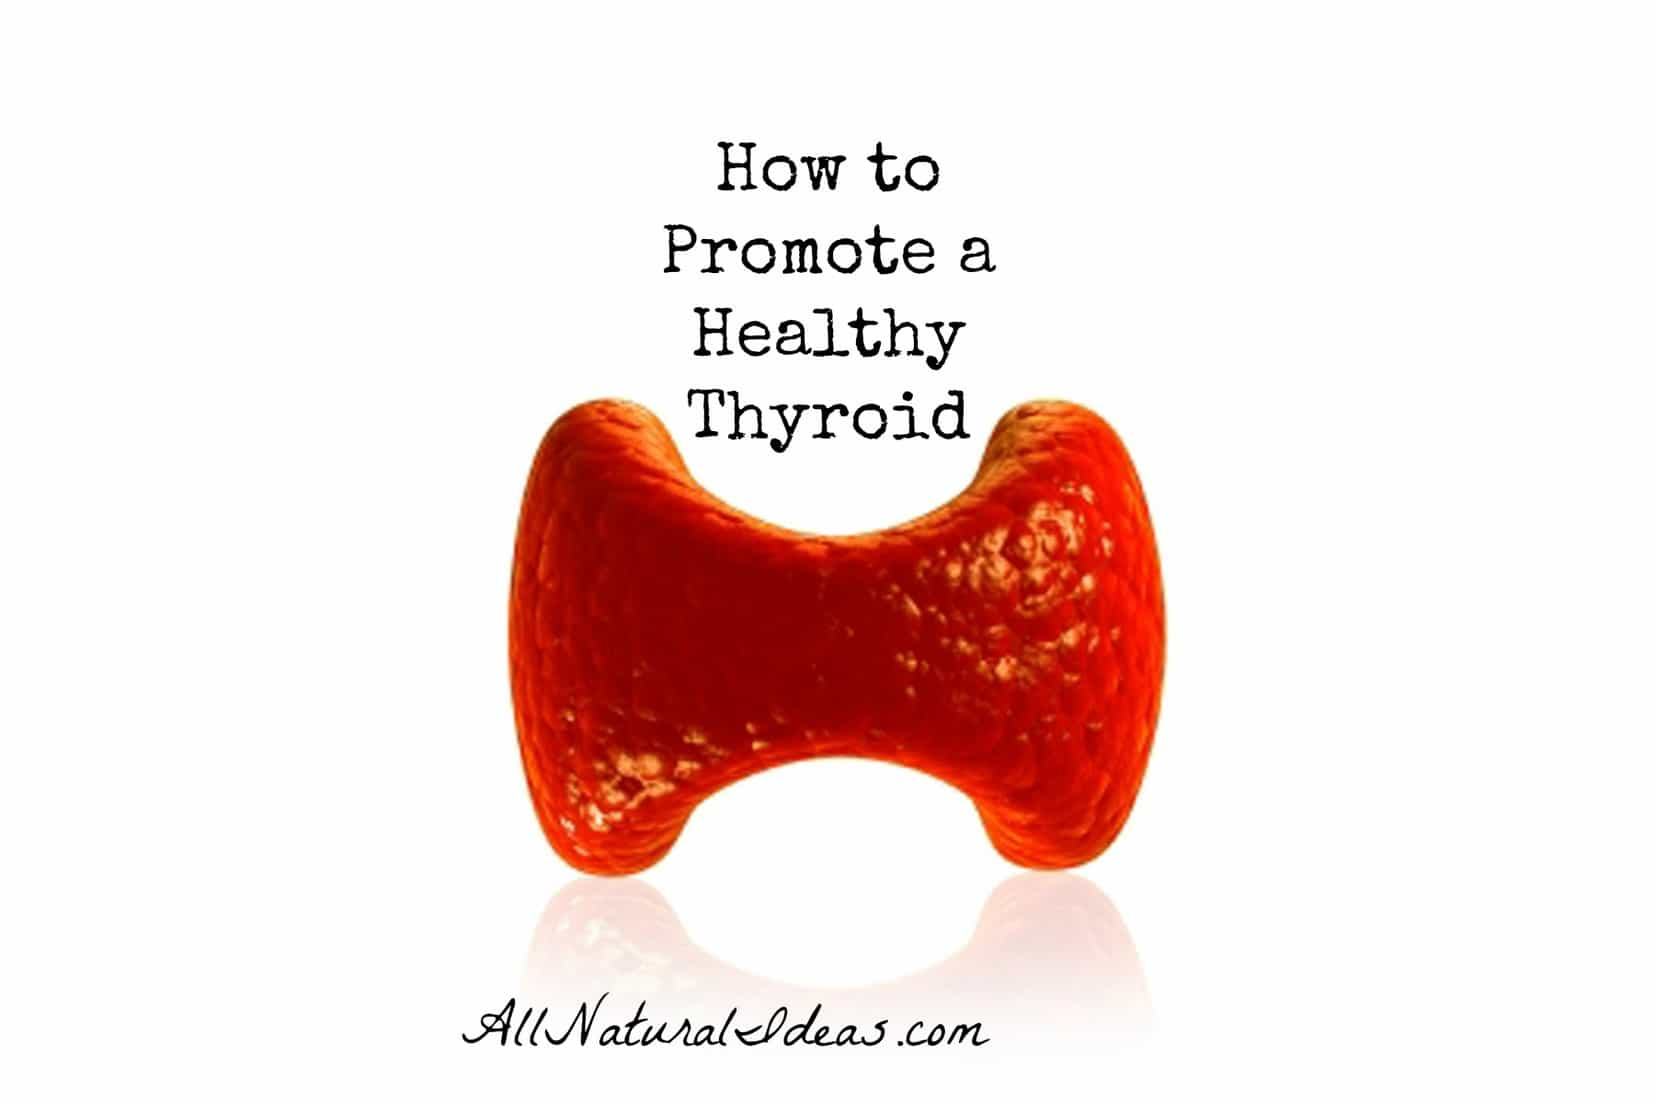 Promoting a healthy thyroid with food and lifestyle